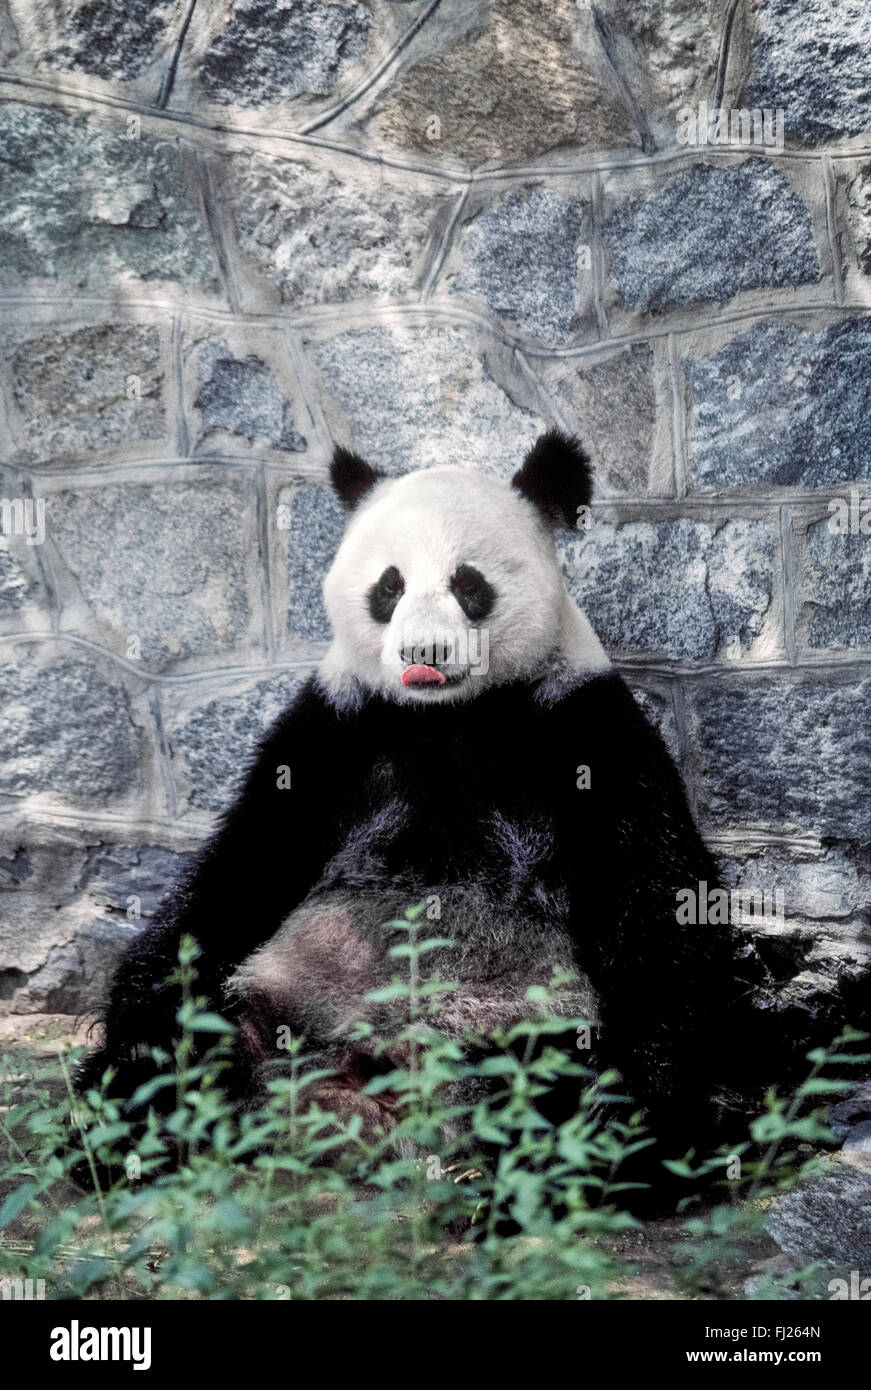 A giant panda licks its lips while waiting patiently for delivery of its favorite food, bamboo, inside the panda - Stock Image